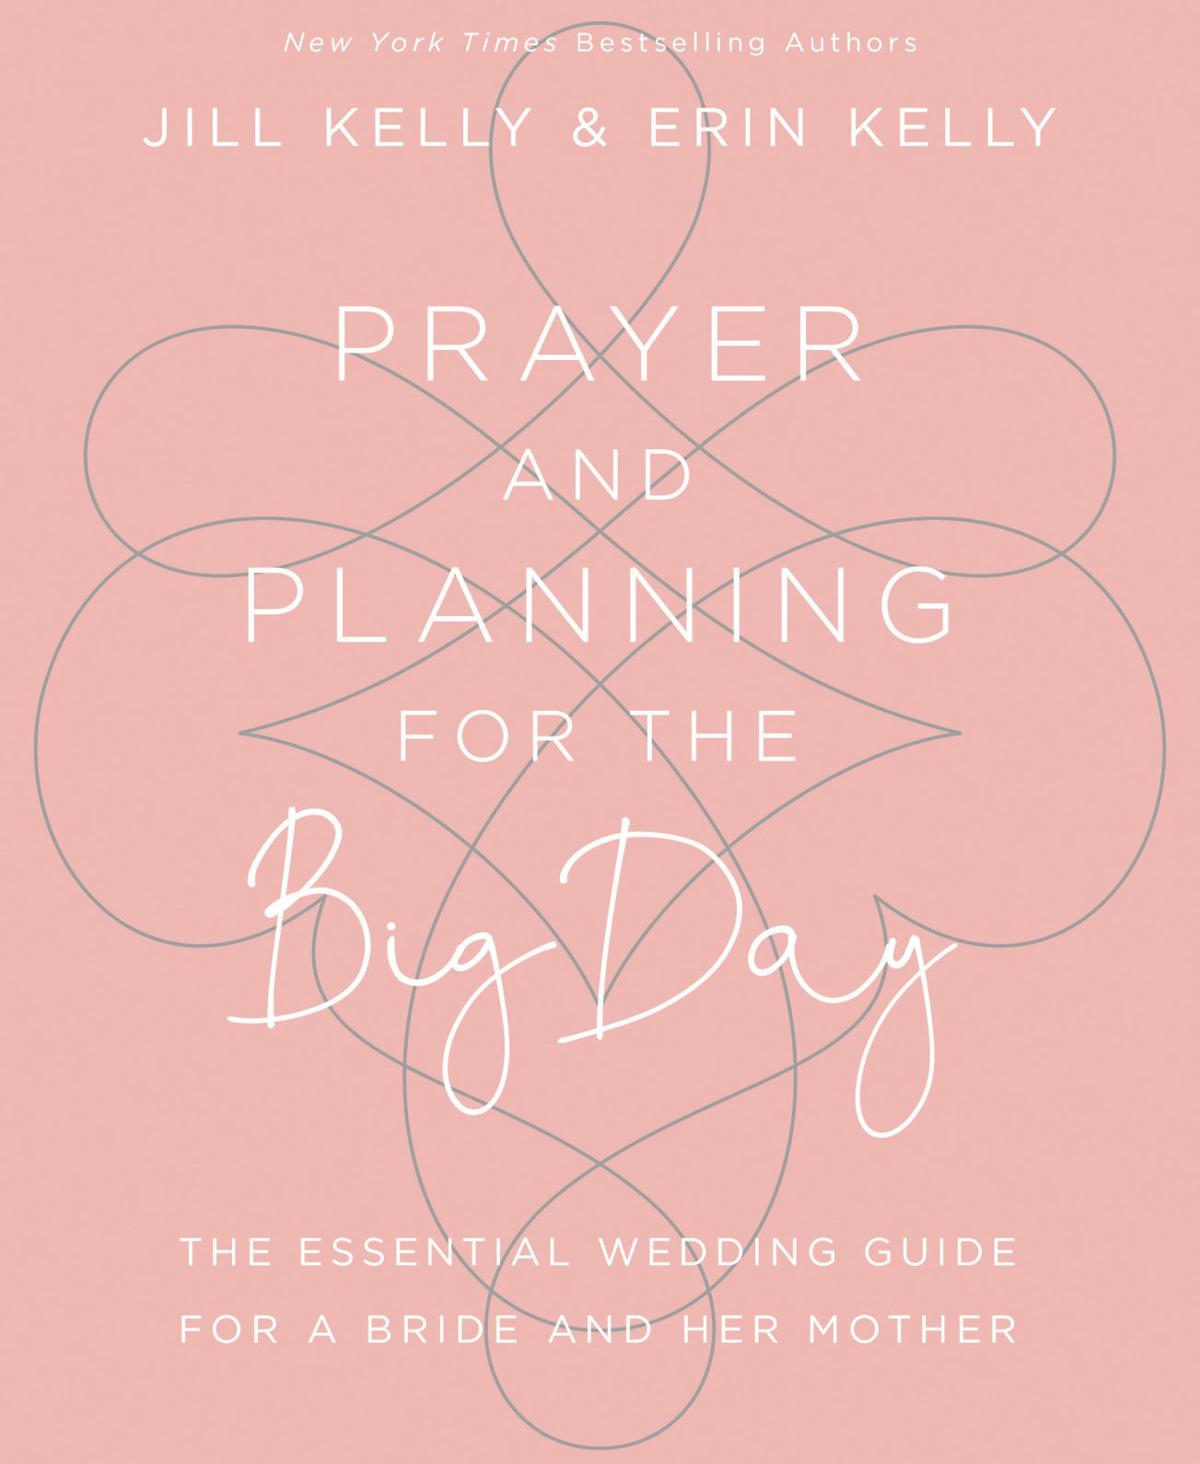 Prayer-and-planning-for-the-big-day1